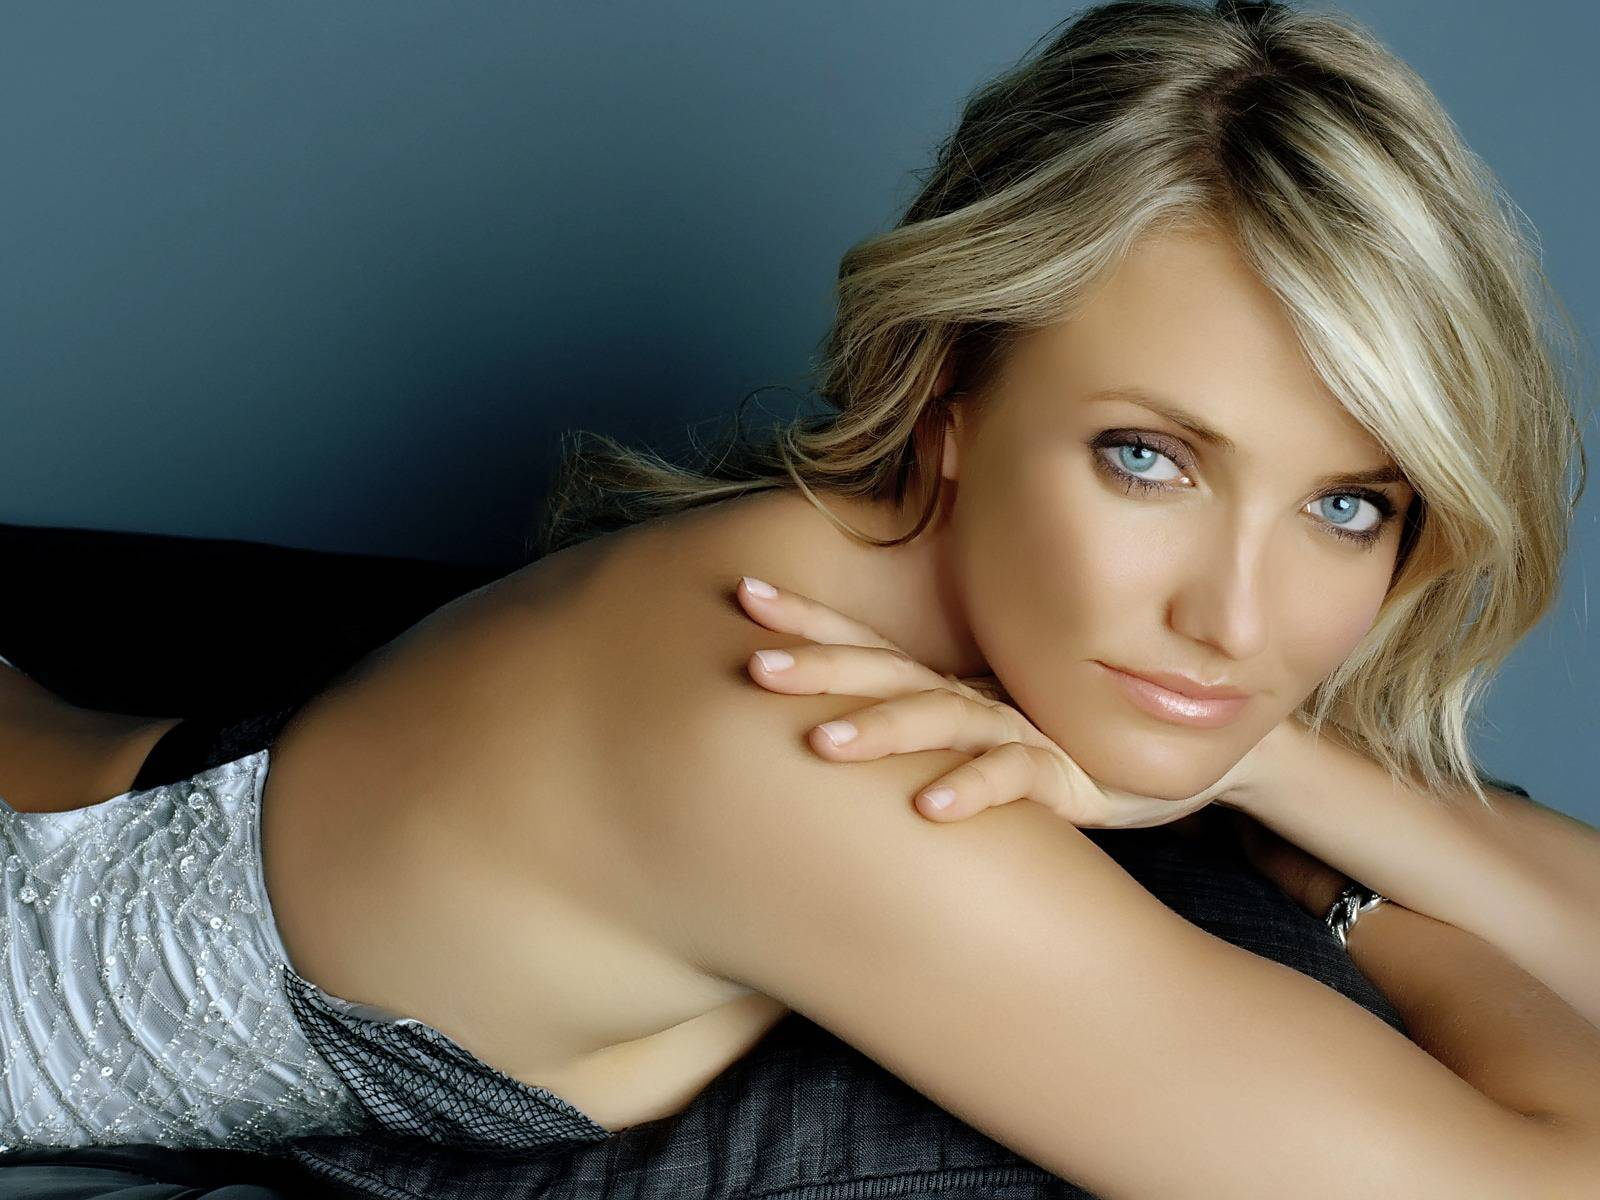 Etiquetas: Cameron Diaz , Wallpaper